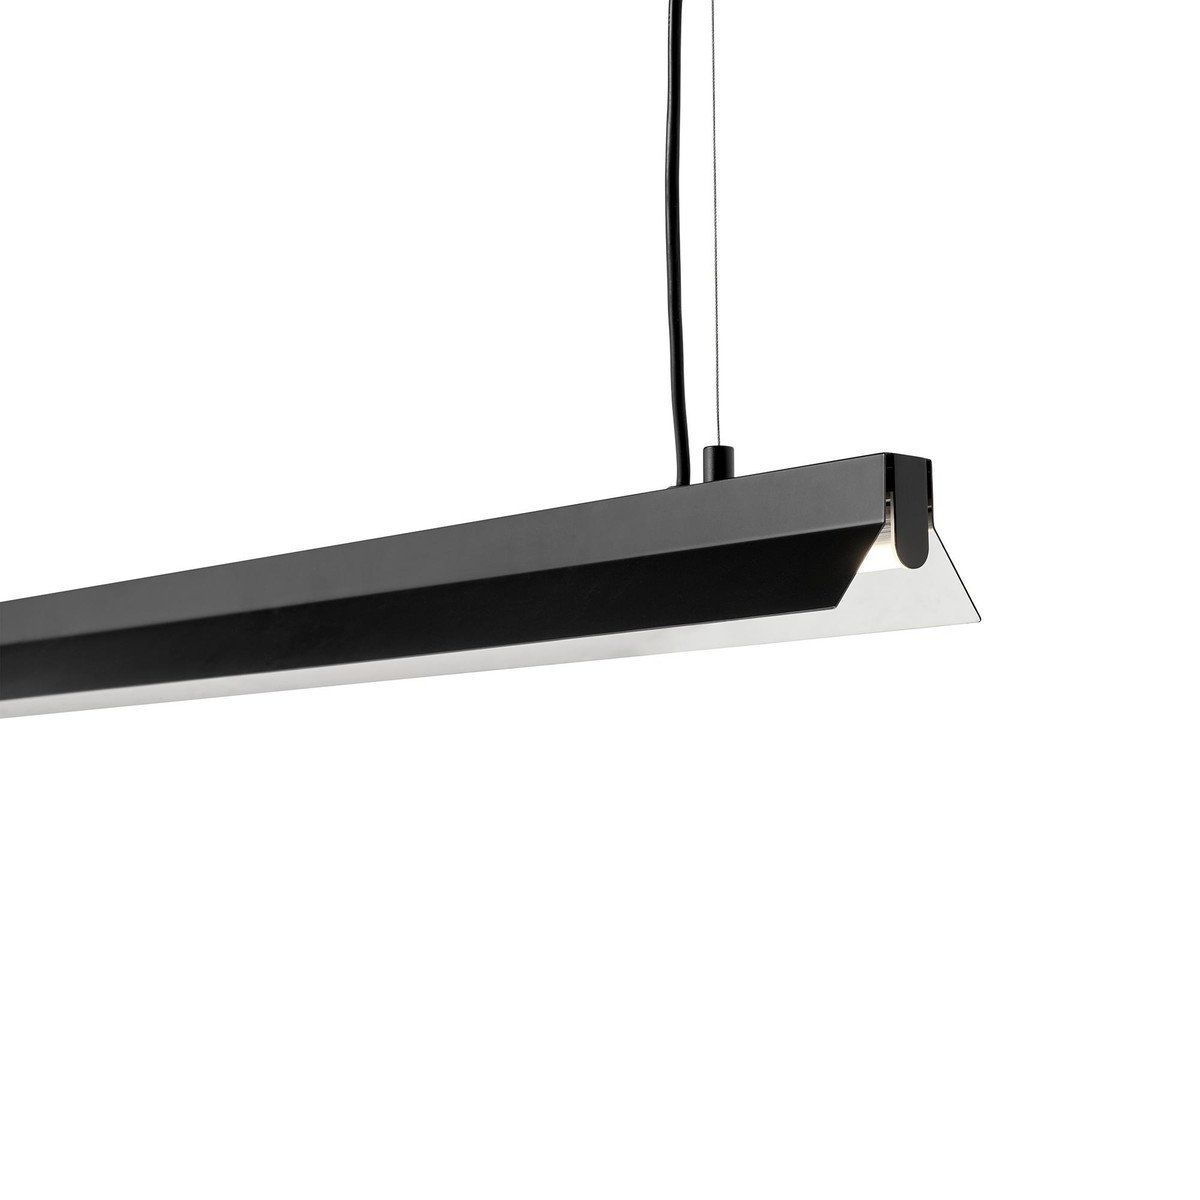 Ambientedirect Bewertung fornell abf1 led pendelleuchte tradition ambientedirect com